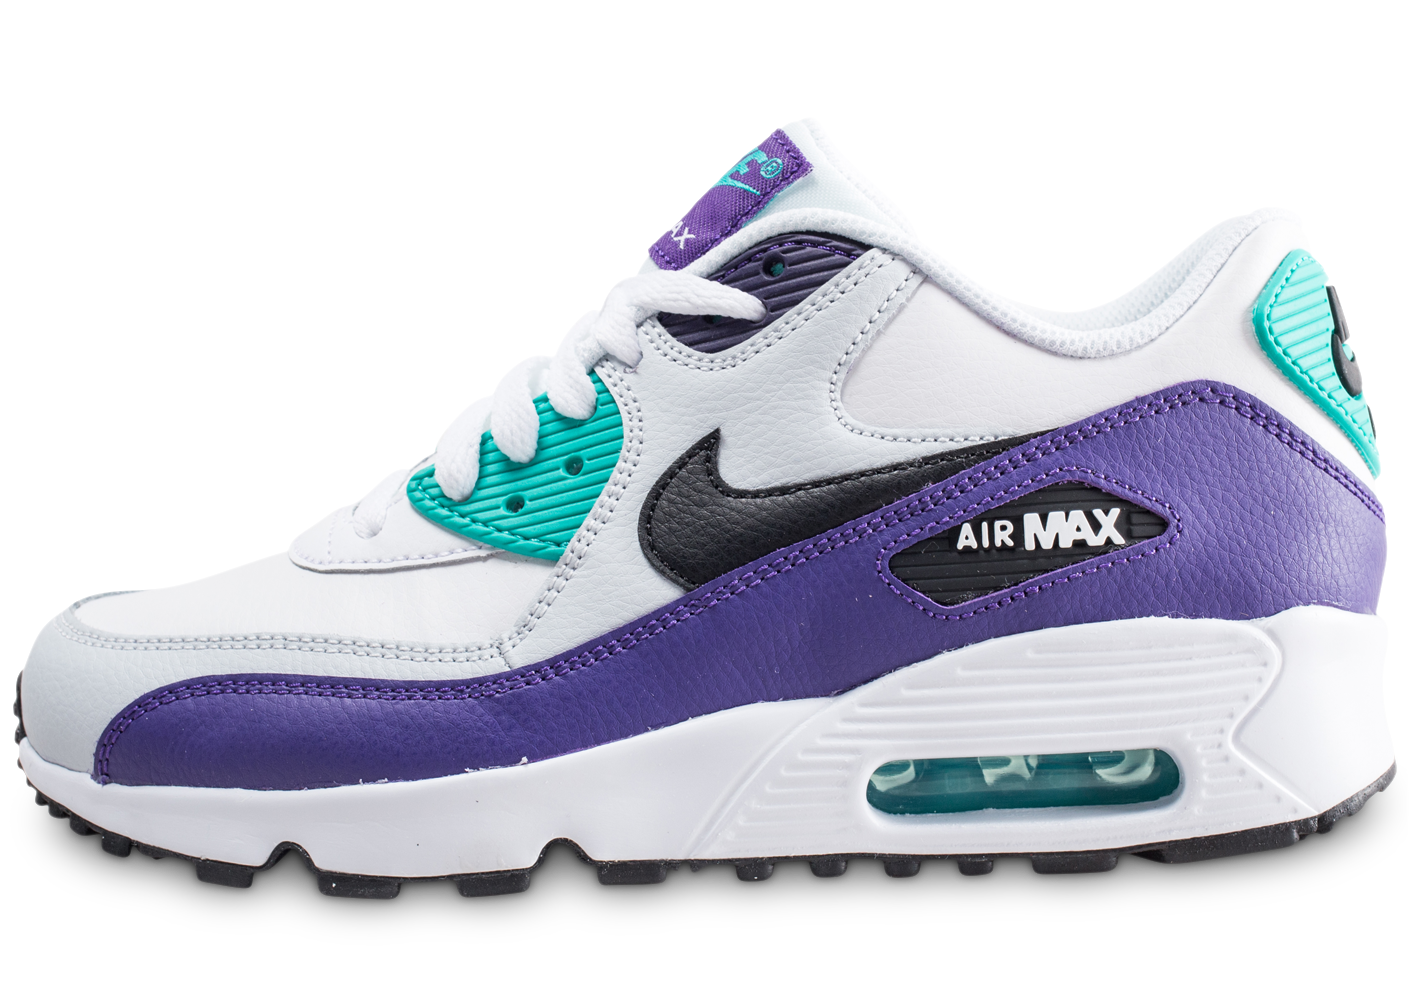 on sale aff10 8e134 Nike enfant air max 90 leather vert et violet.